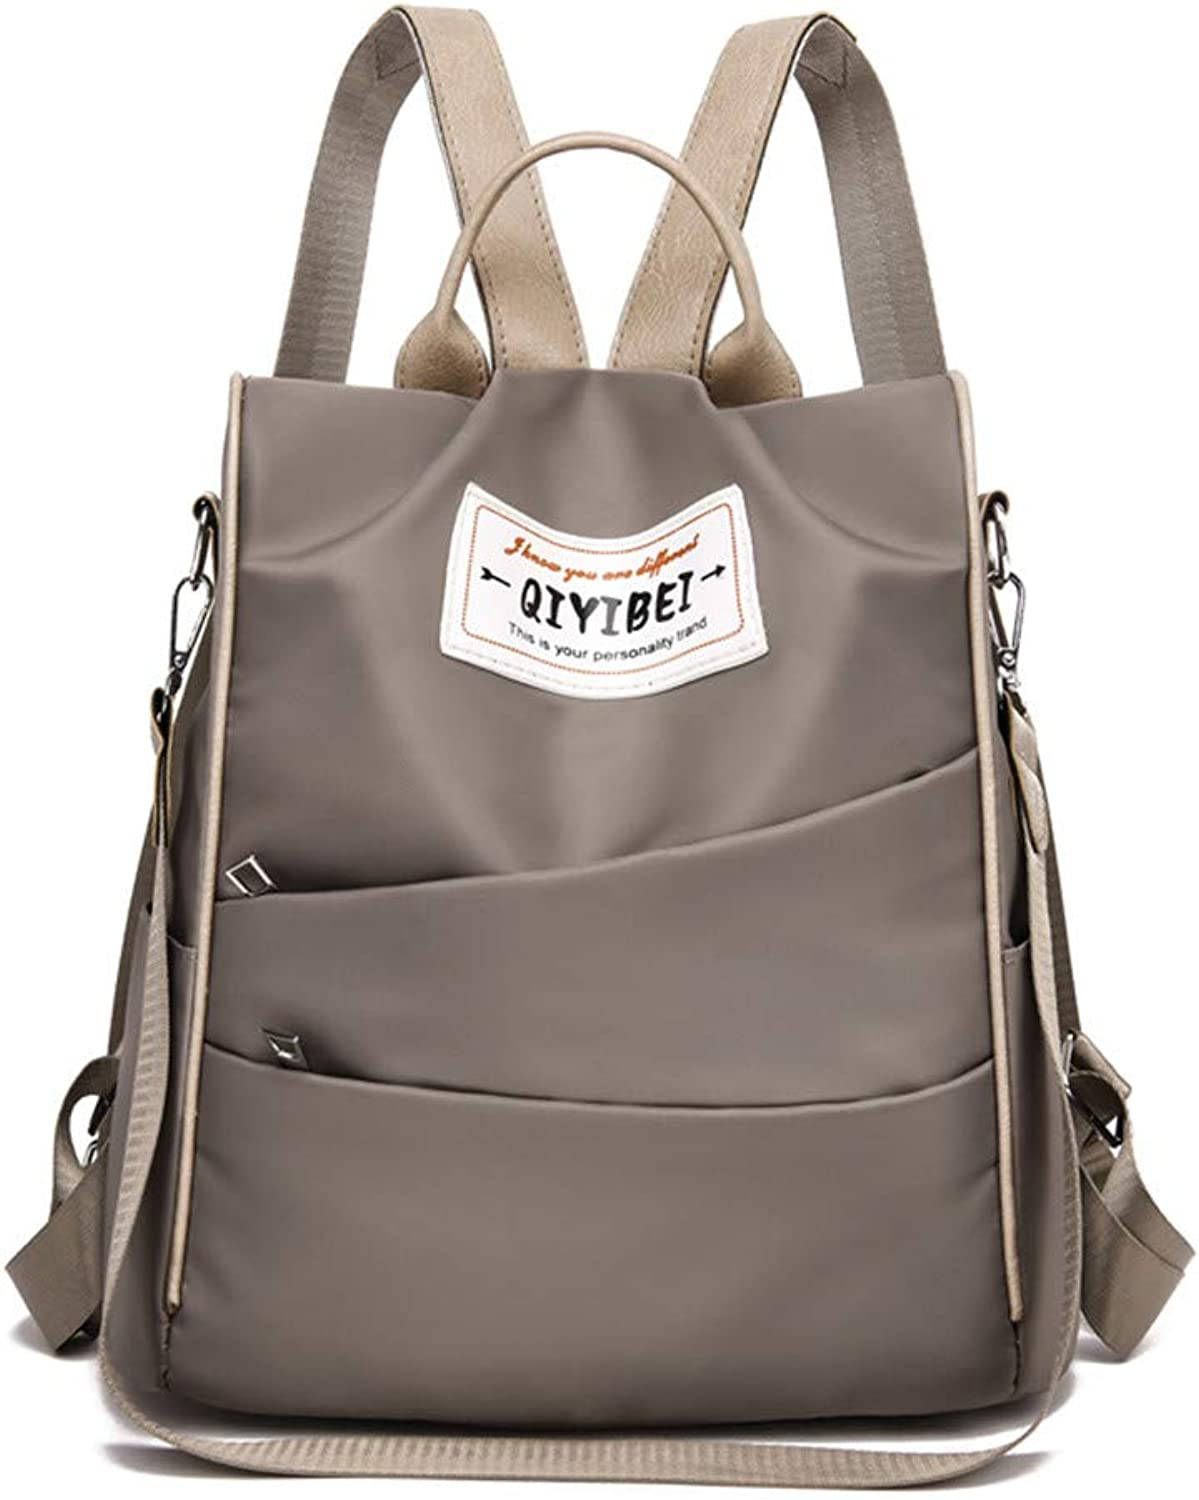 Backpack Oxford Cloth Canvas Bag Ladies Small Backpack, Khaki Casual Practical Simple